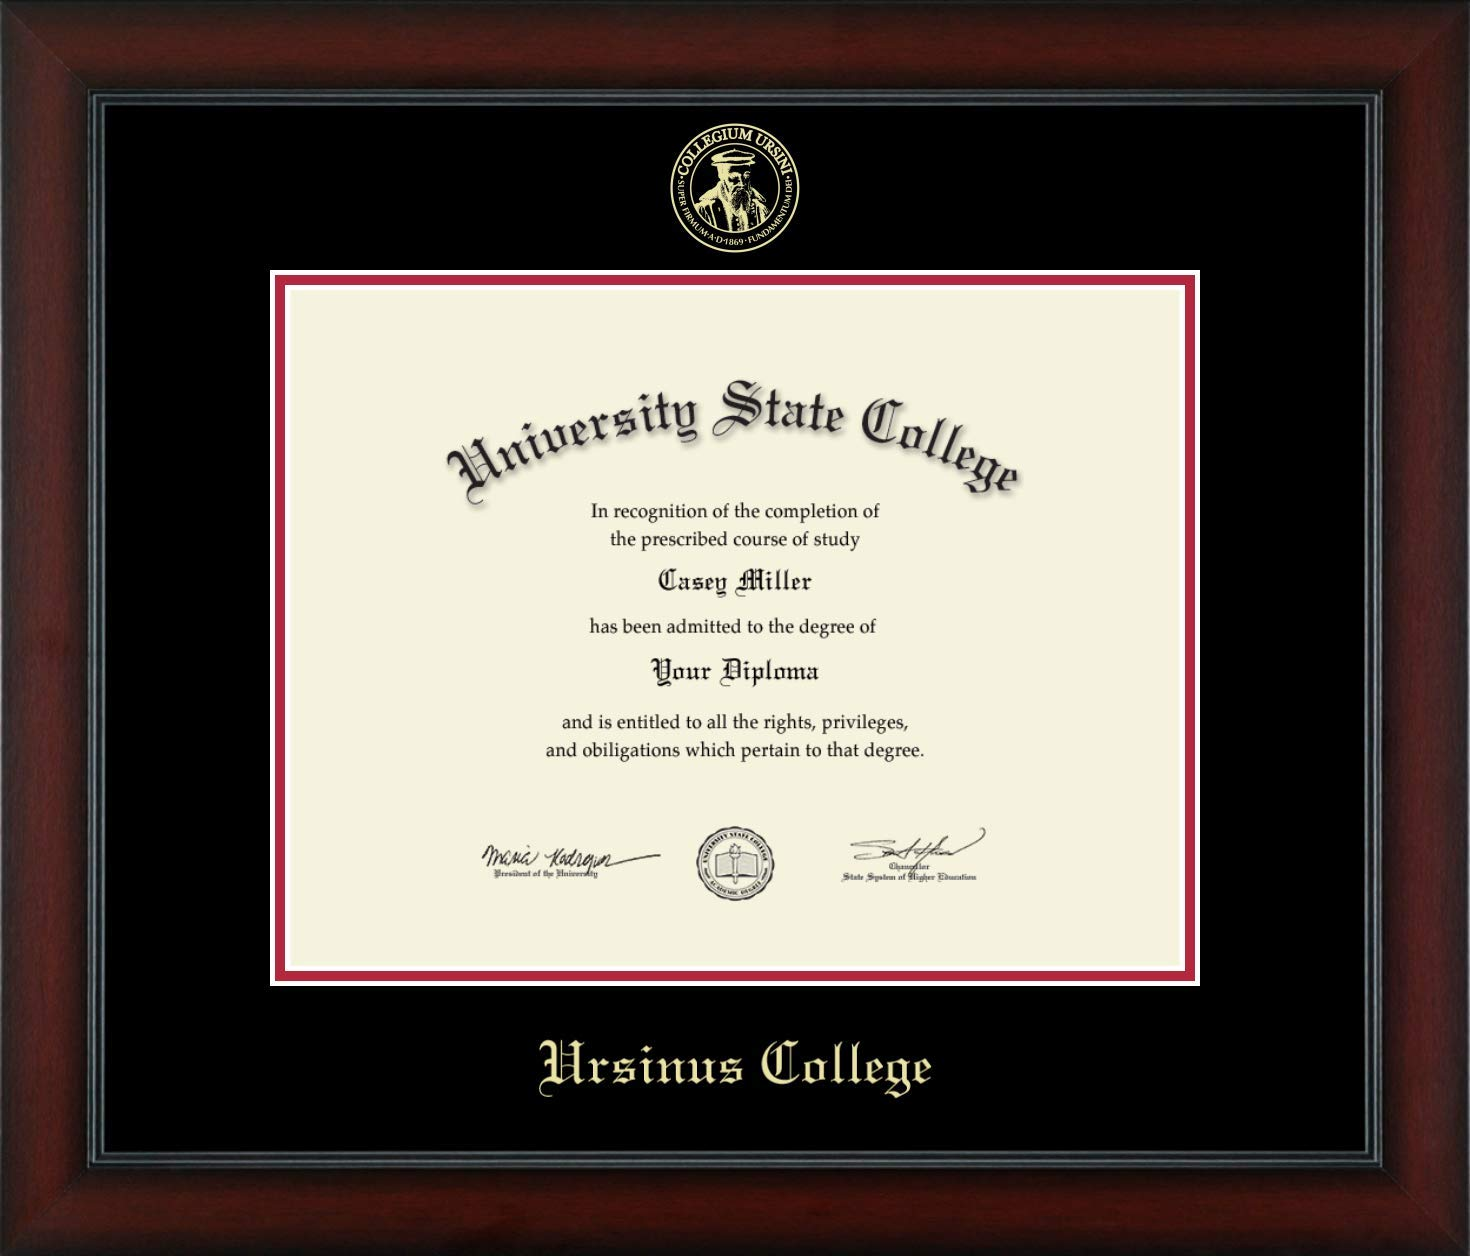 Ursinus College - Officially Licensed - Gold Embossed Diploma Frame - Diploma Size 17'' x 13''